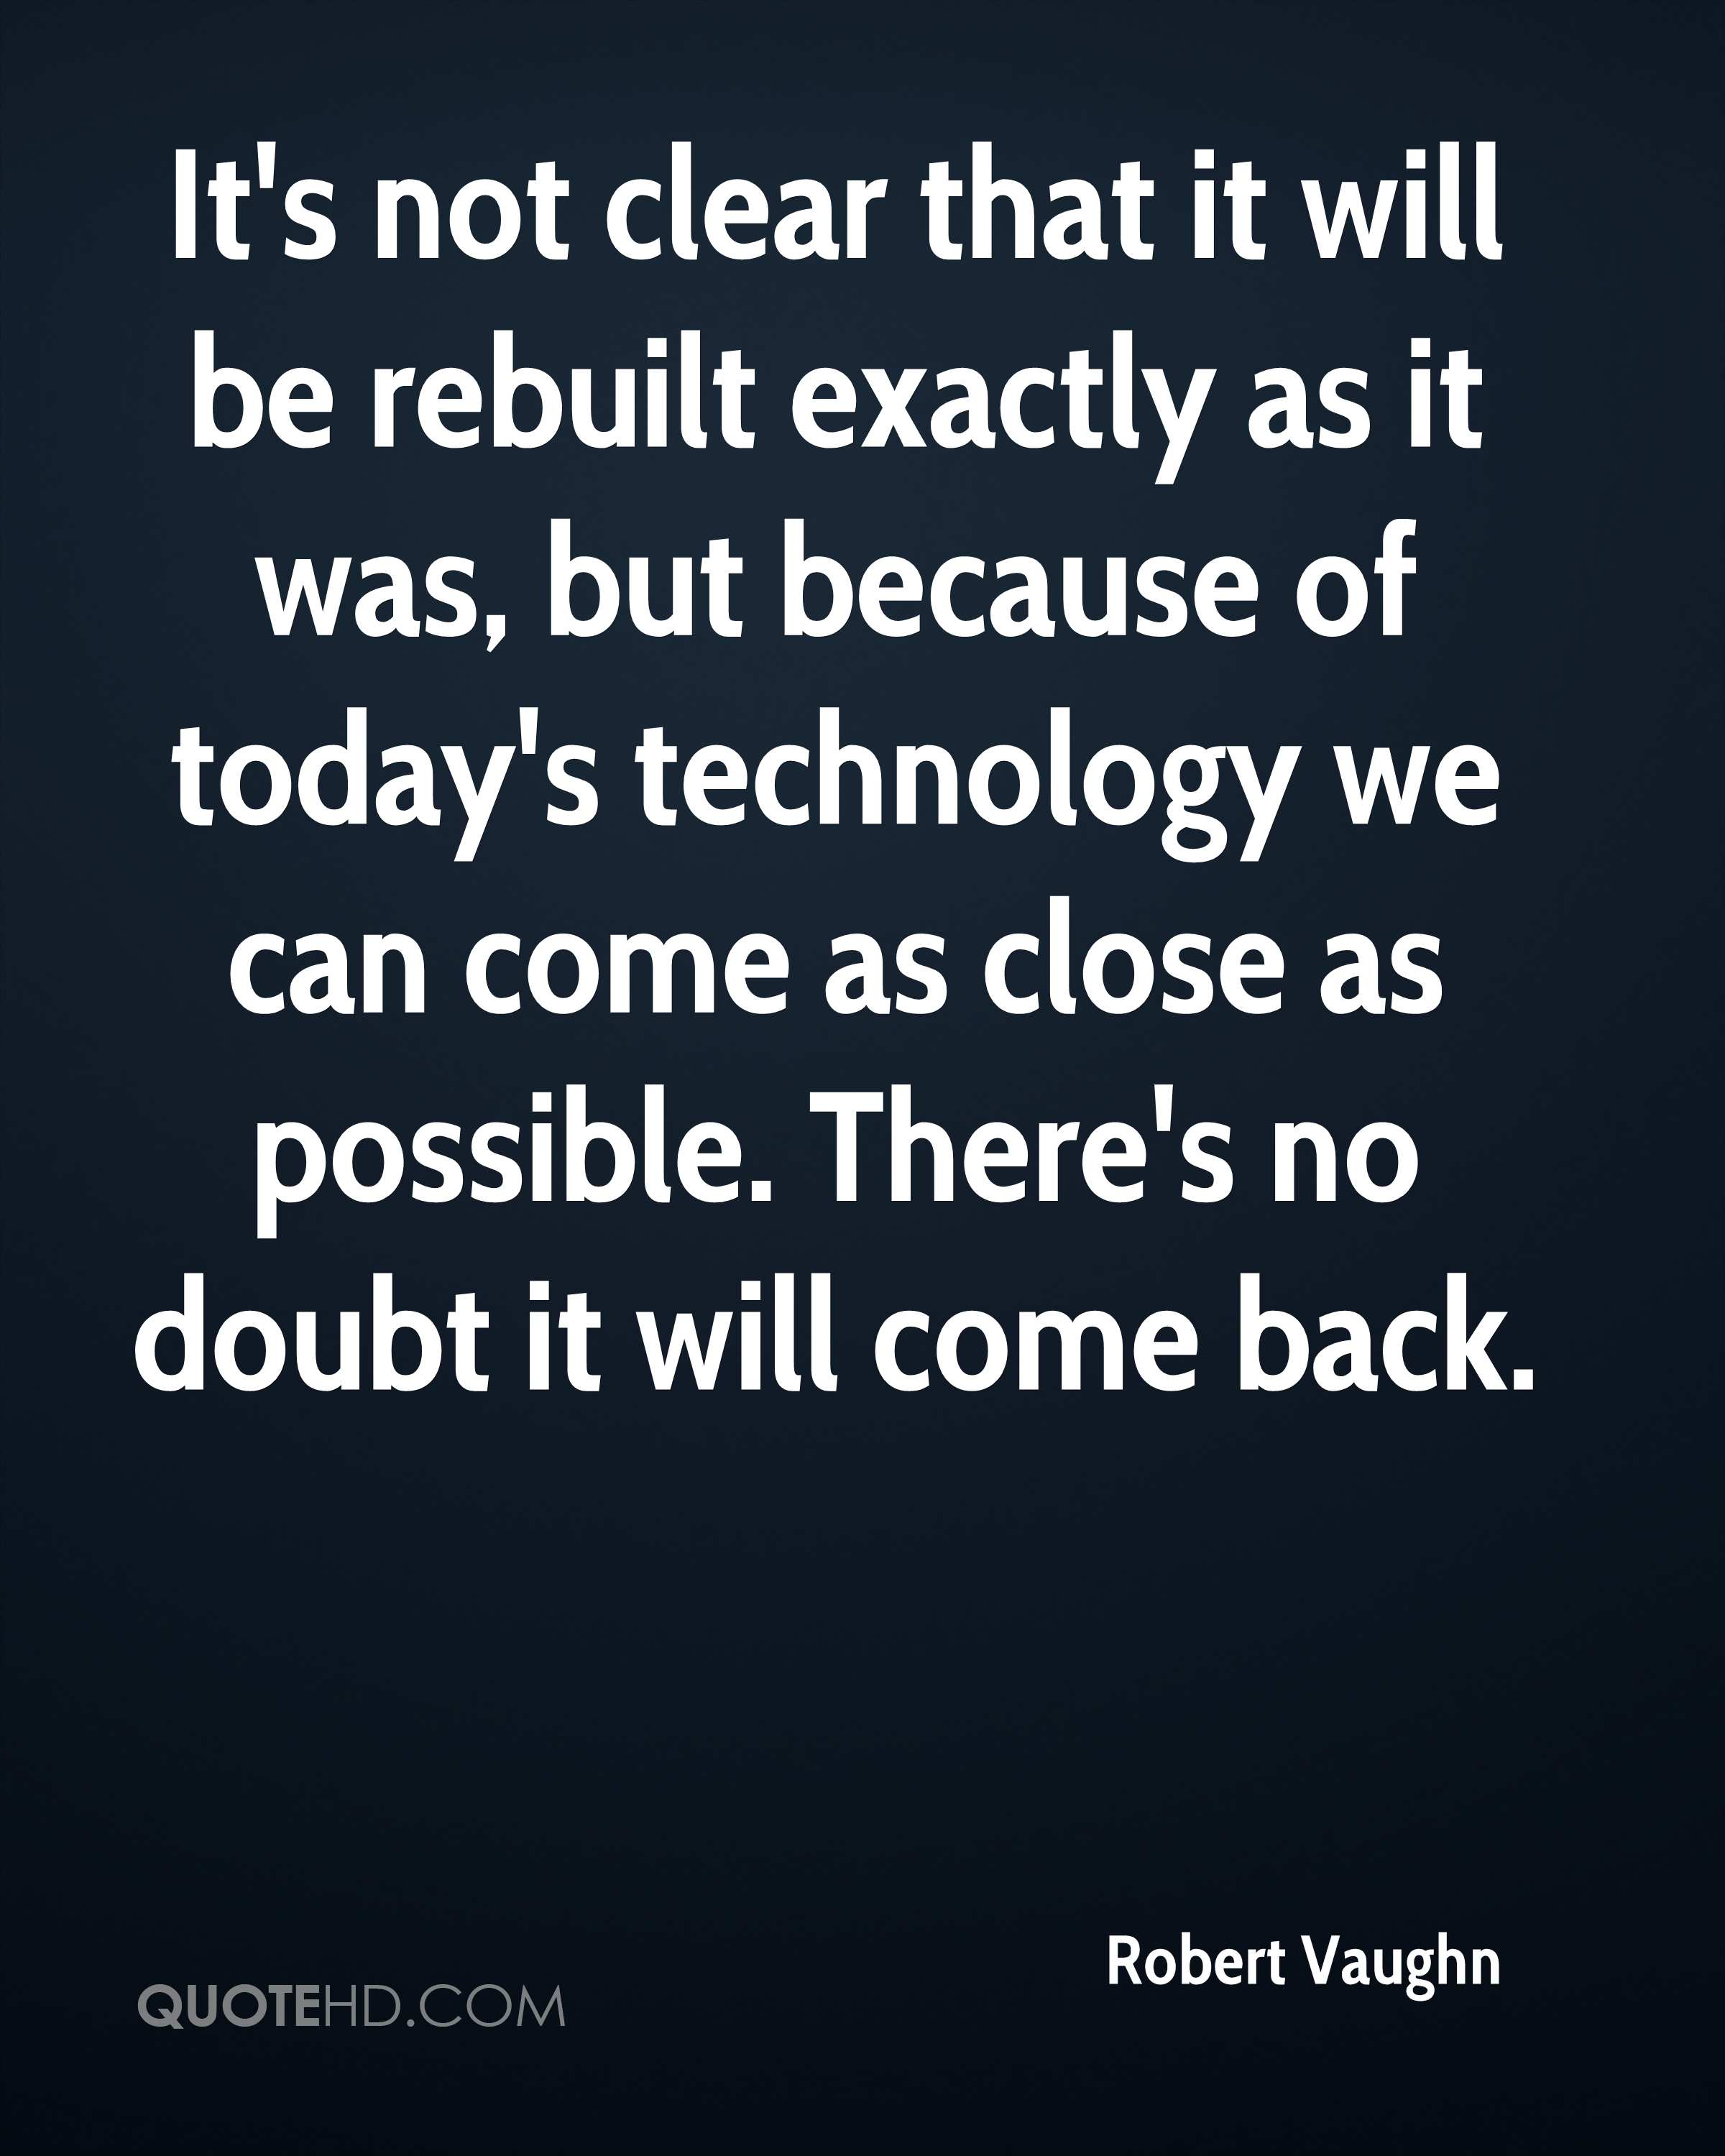 It's not clear that it will be rebuilt exactly as it was, but because of today's technology we can come as close as possible. There's no doubt it will come back.